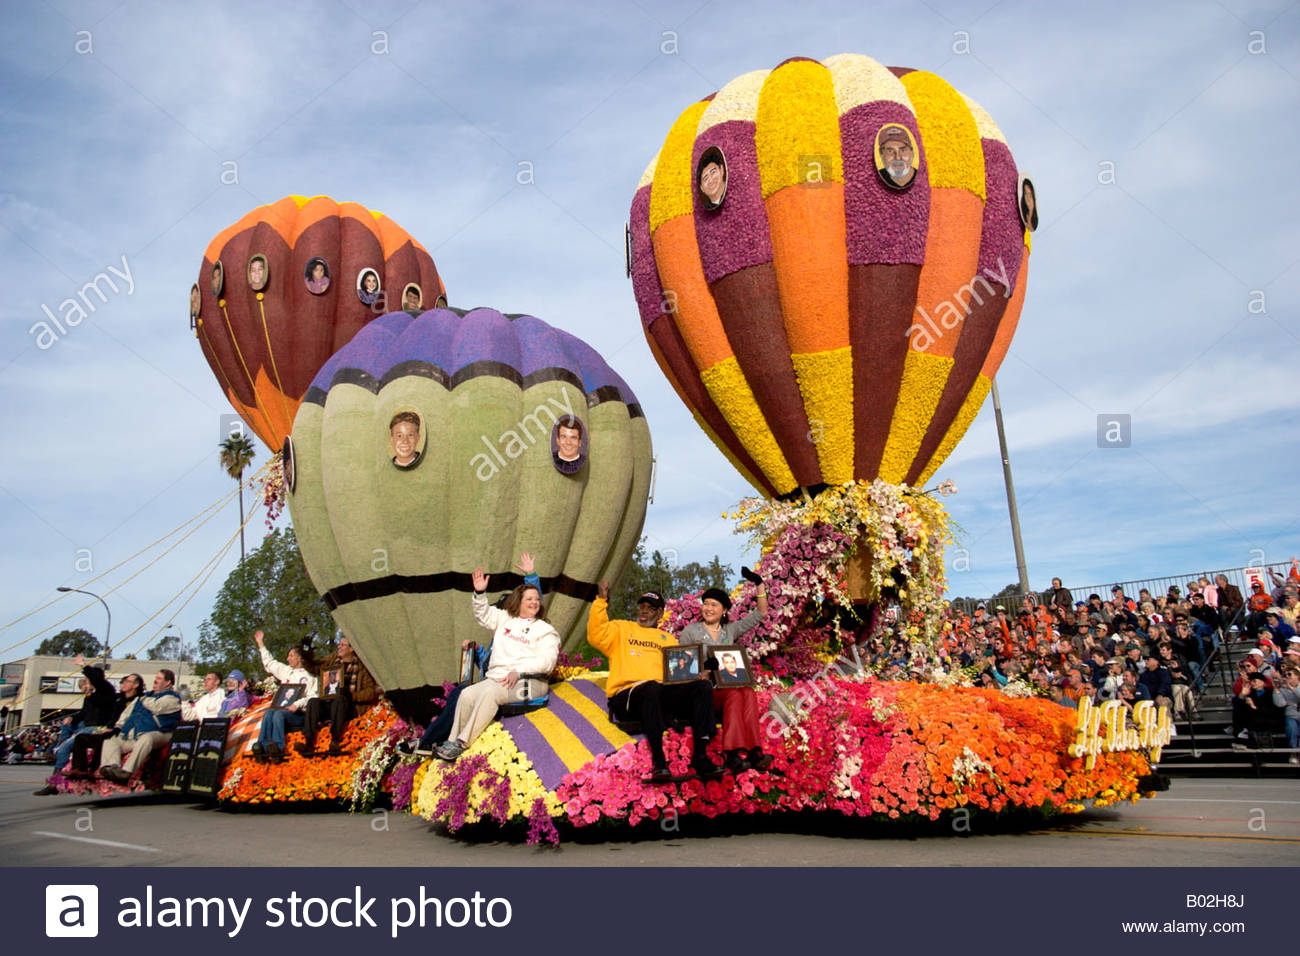 Donate Life s Life Takes Flight Rose Float at the 2008 Tournament of Roses Parade Pasadena California - Stock Image